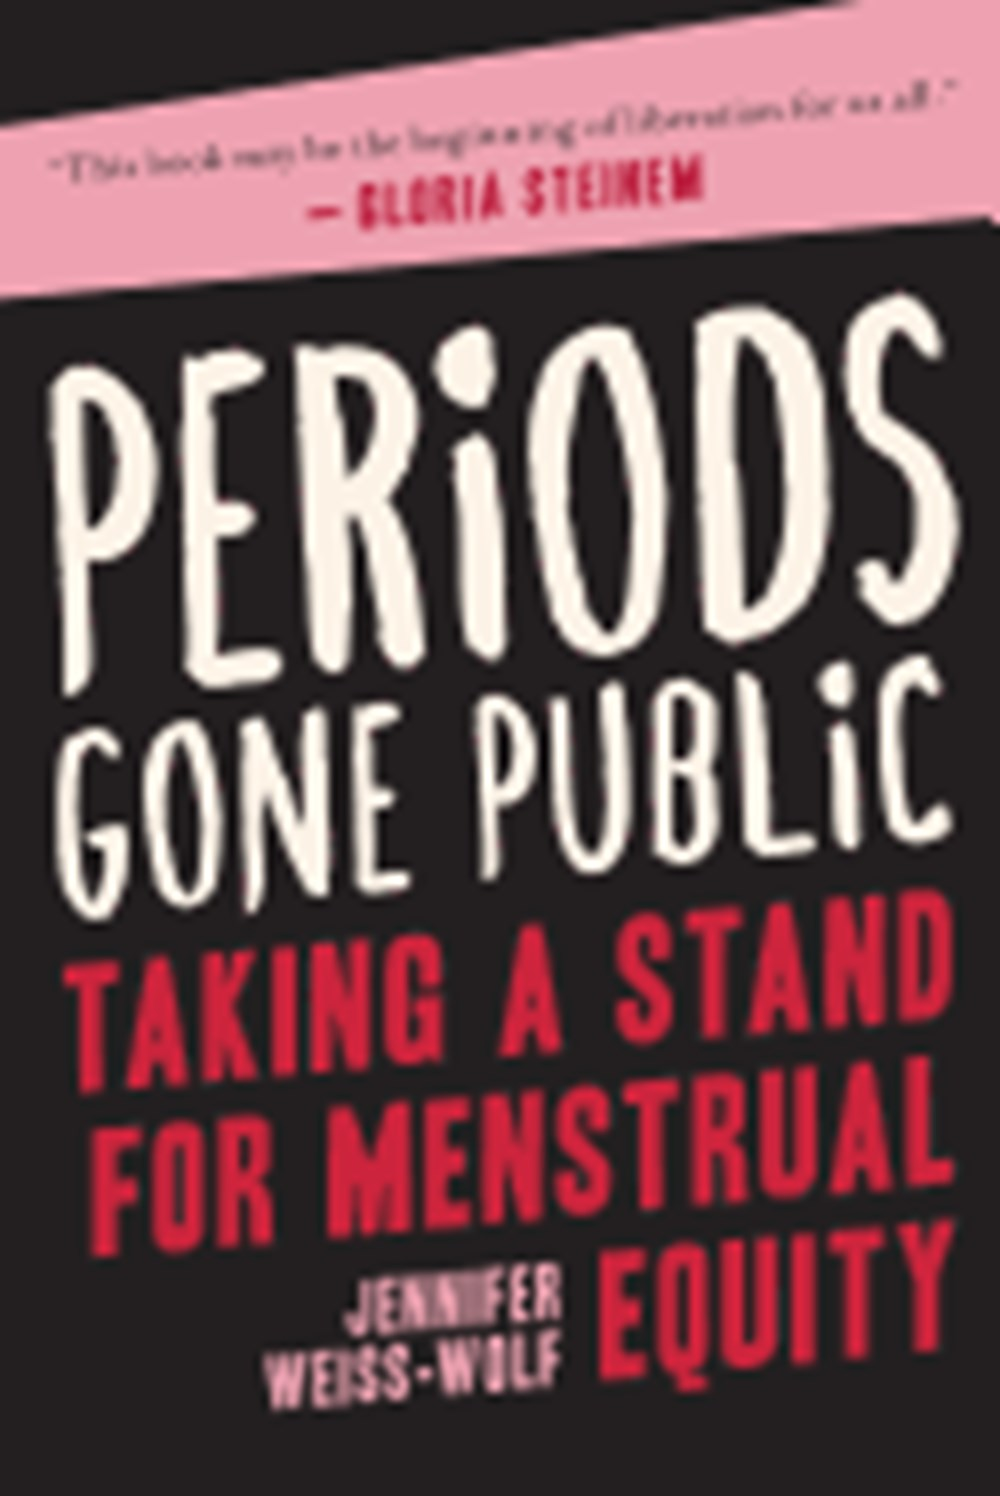 Periods Gone Public Taking a Stand for Menstrual Equity